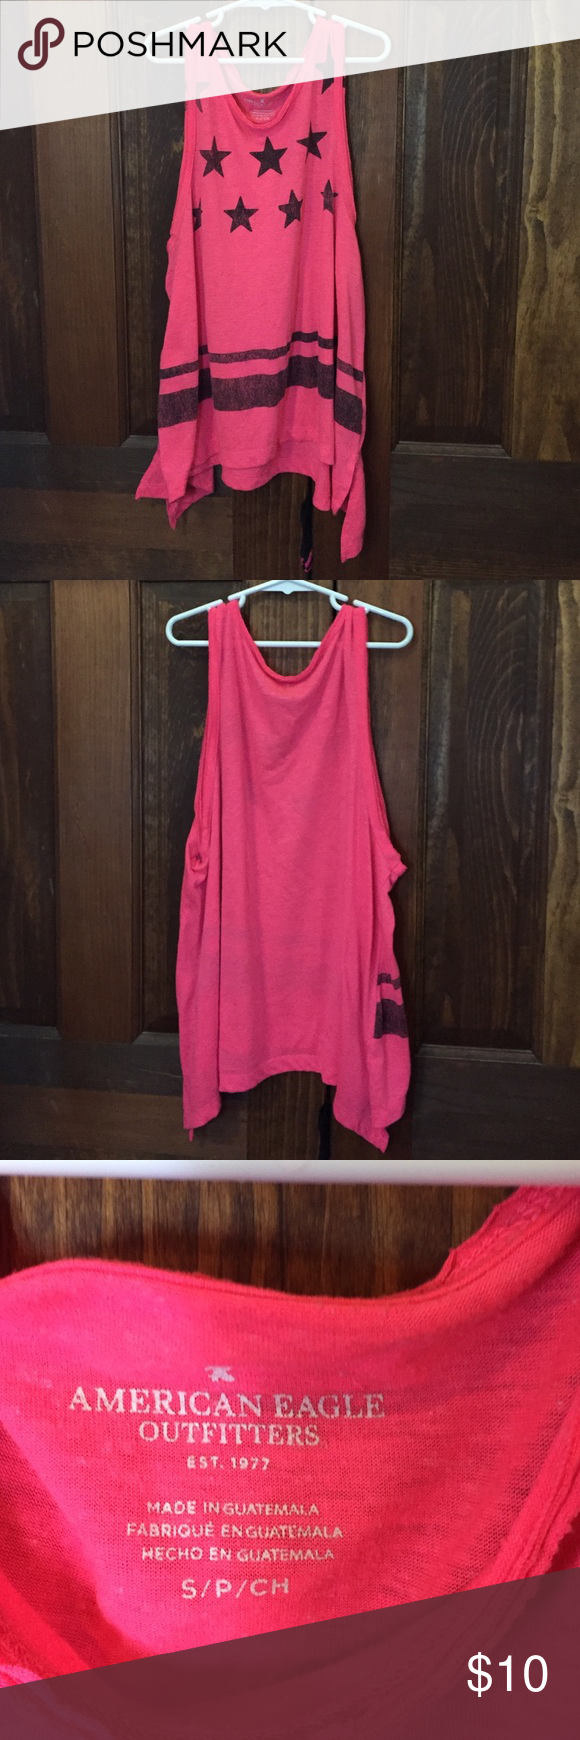 American Eagle Outfitters Tanktop ❤️special offers on bundles if you comment❤️ ❤️open to trade❤️ ❤️open to offers❤️ ❤️please leave feedback❤️  Bright pink tanktop with small side cutouts. Worn few times and in great condition. Fits true to size and the sides and longer the the front and back. American Eagle Outfitters Tops Tank Tops